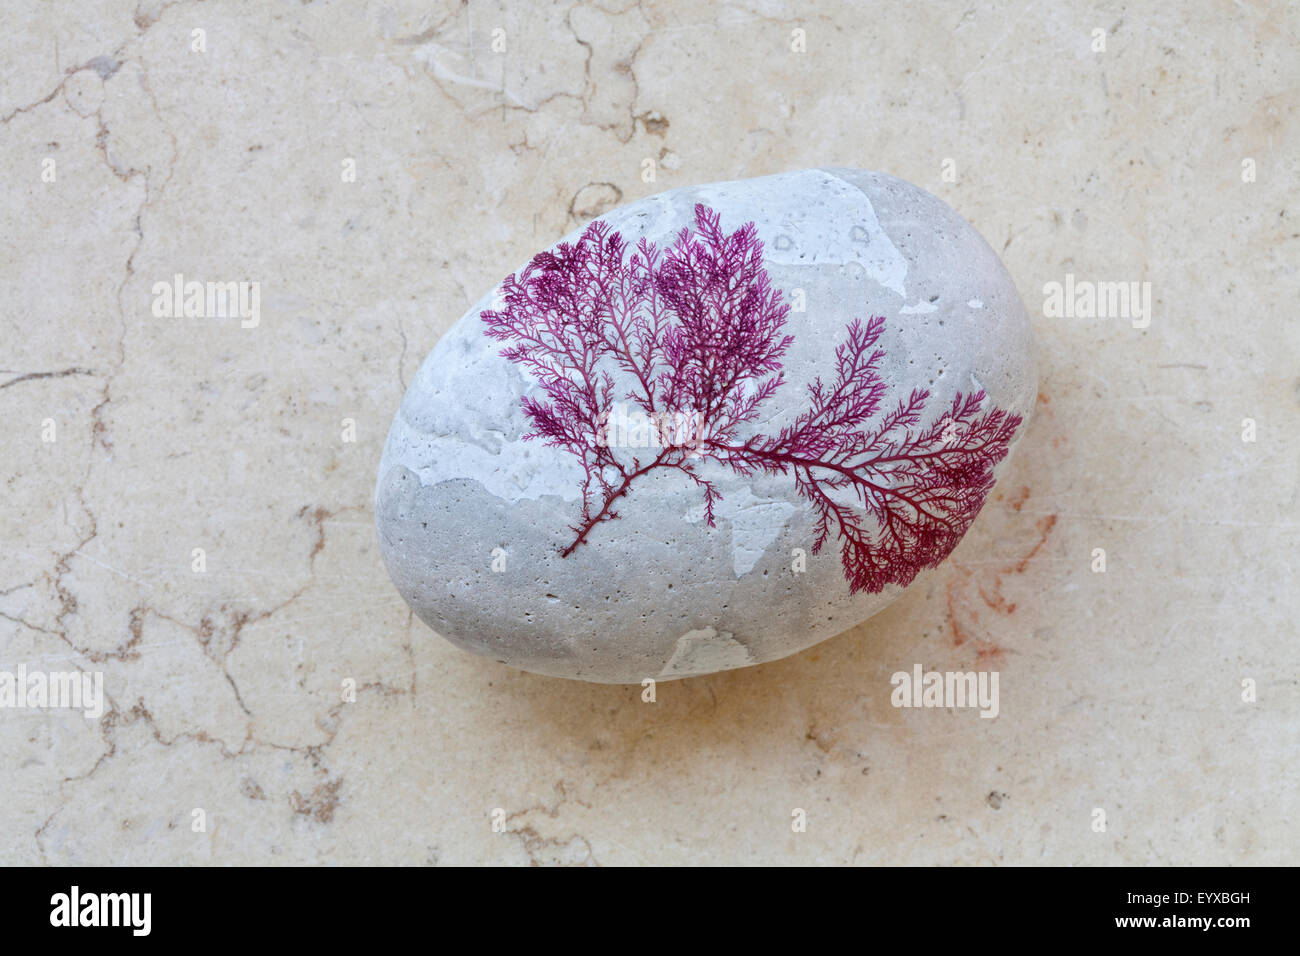 Still Pictures Are All Very Fine And >> Very Fine Rhodophyta Seaweed Attached To A Pale Coloured Rounded